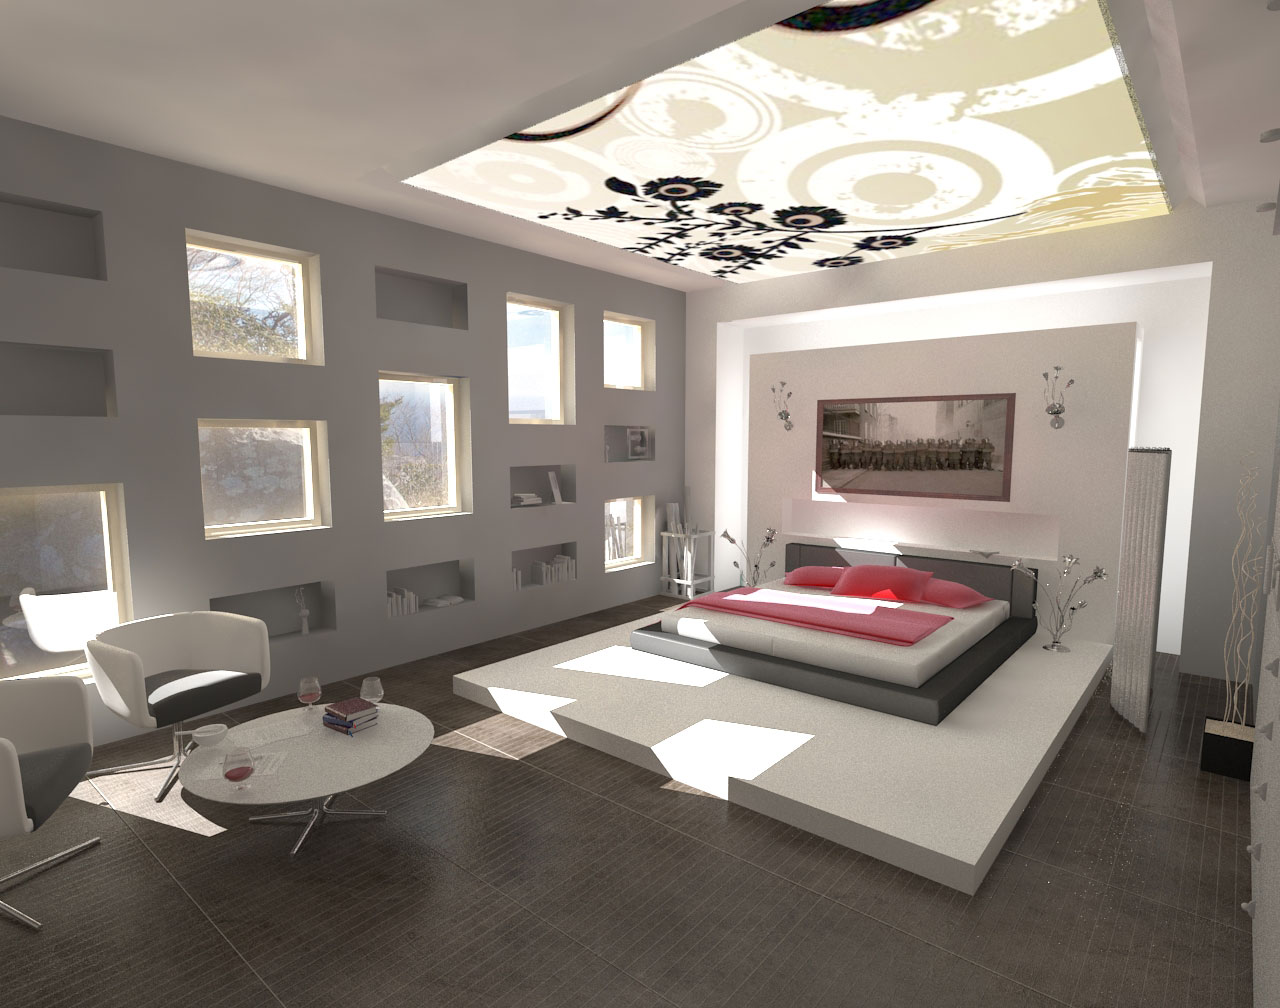 Fabulous Modern Bedroom Interior Design Ideas 1280 x 1008 · 183 kB · jpeg